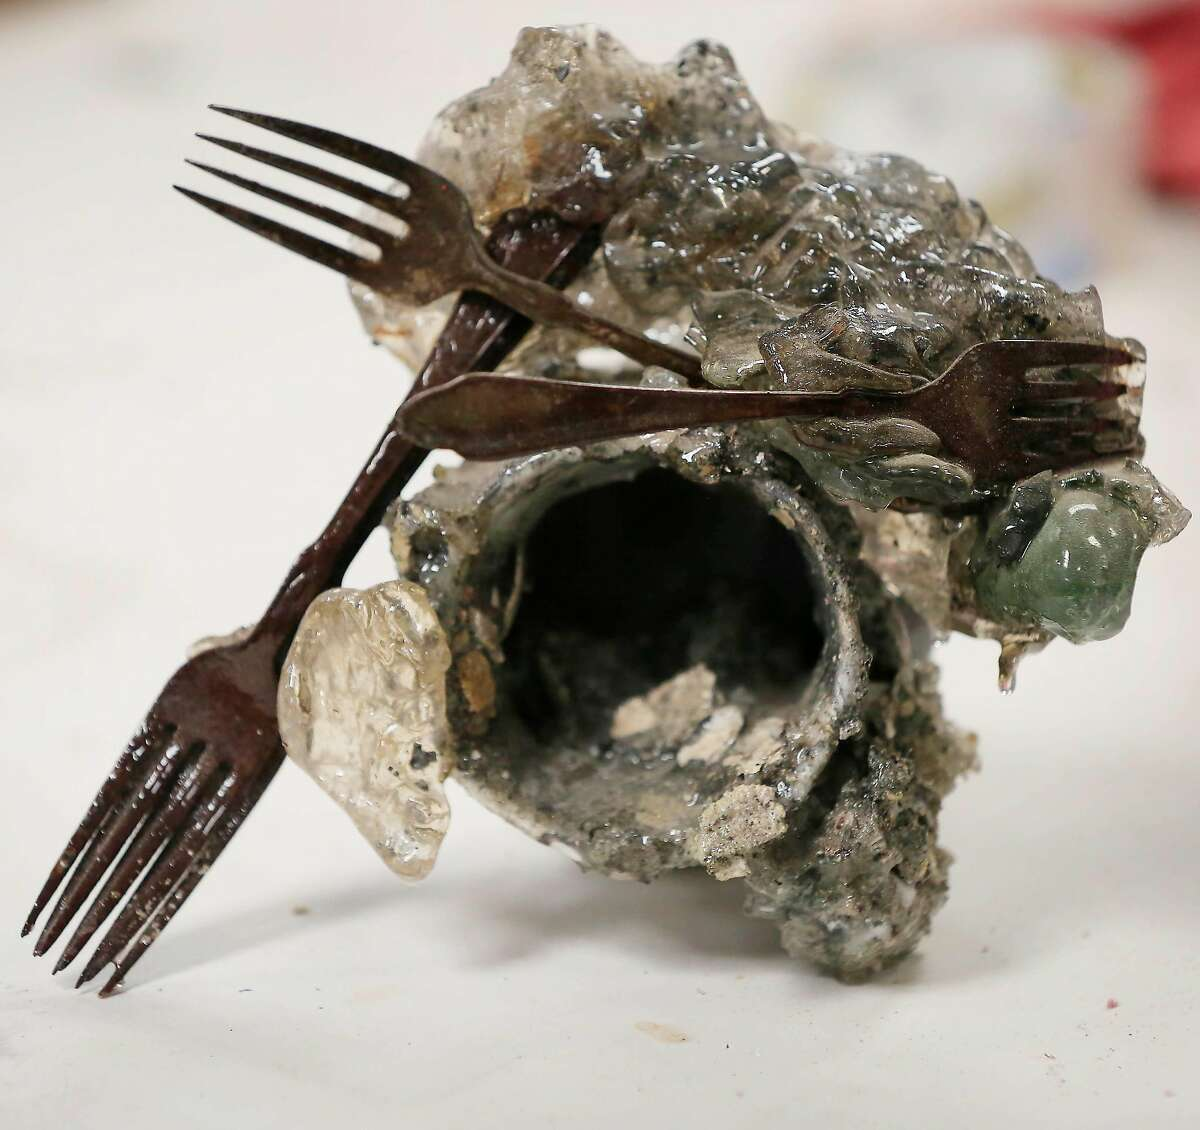 A piece of debris from the North Bay fires that Helena Donzelli found on her landlord's property and that she is planning to use in a piece of art sits on a table in the studio on Thursday, July 5, 2018 in Sonoma, Calif.